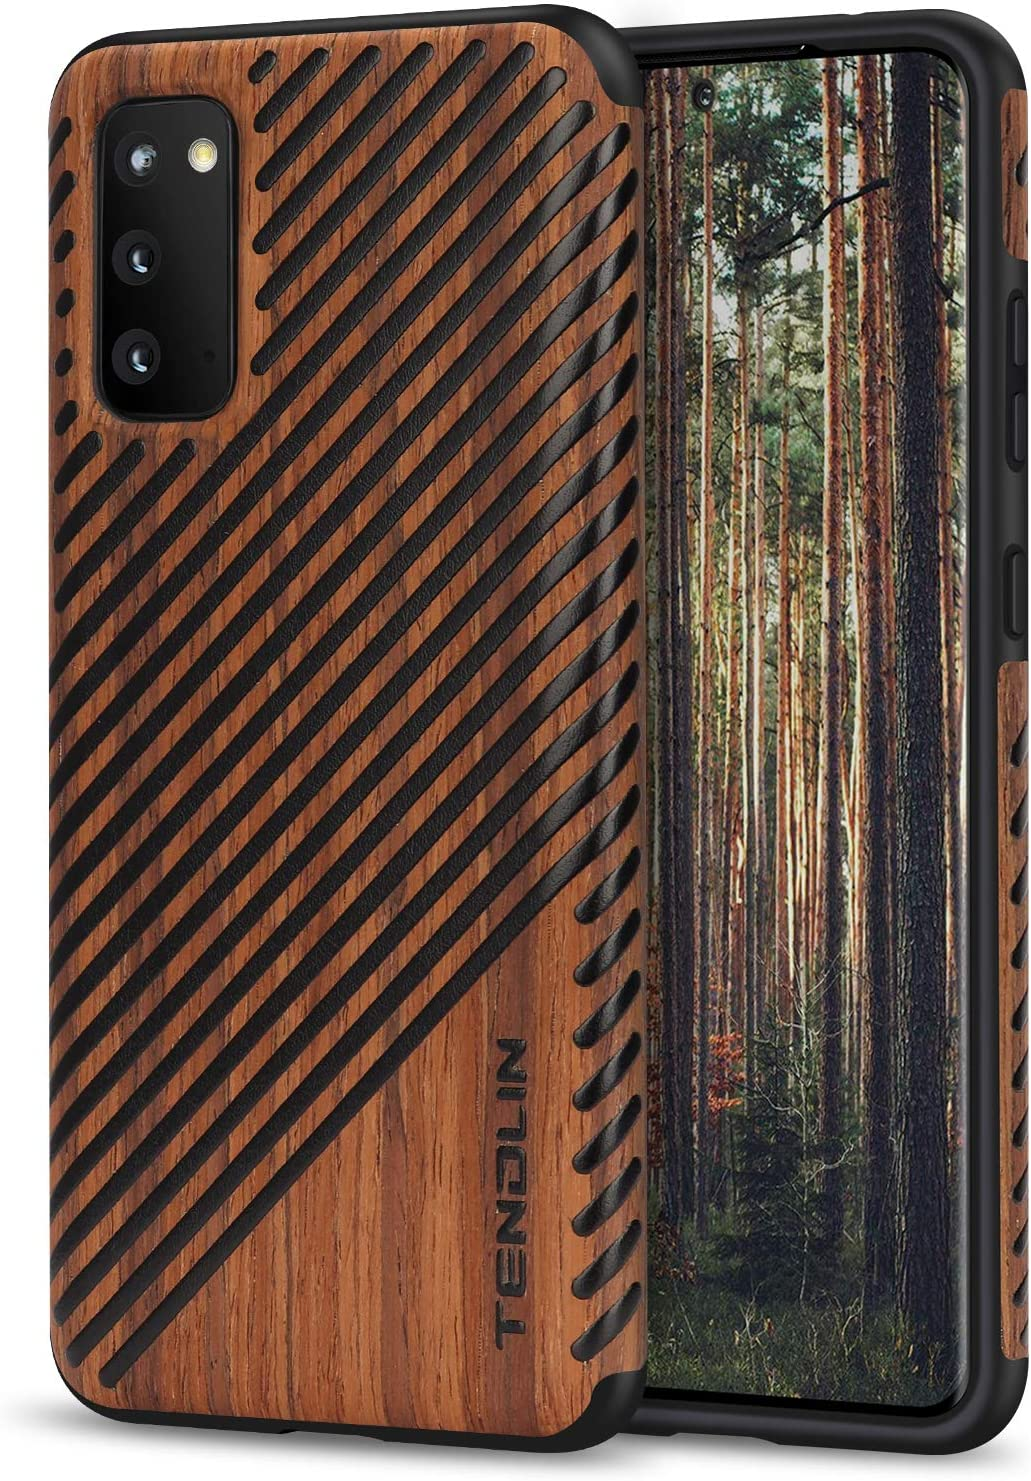 TENDLIN Compatible with Samsung Galaxy S20 Case Wood Grain Outside Design TPU Hybrid Case (Wood & Leather)